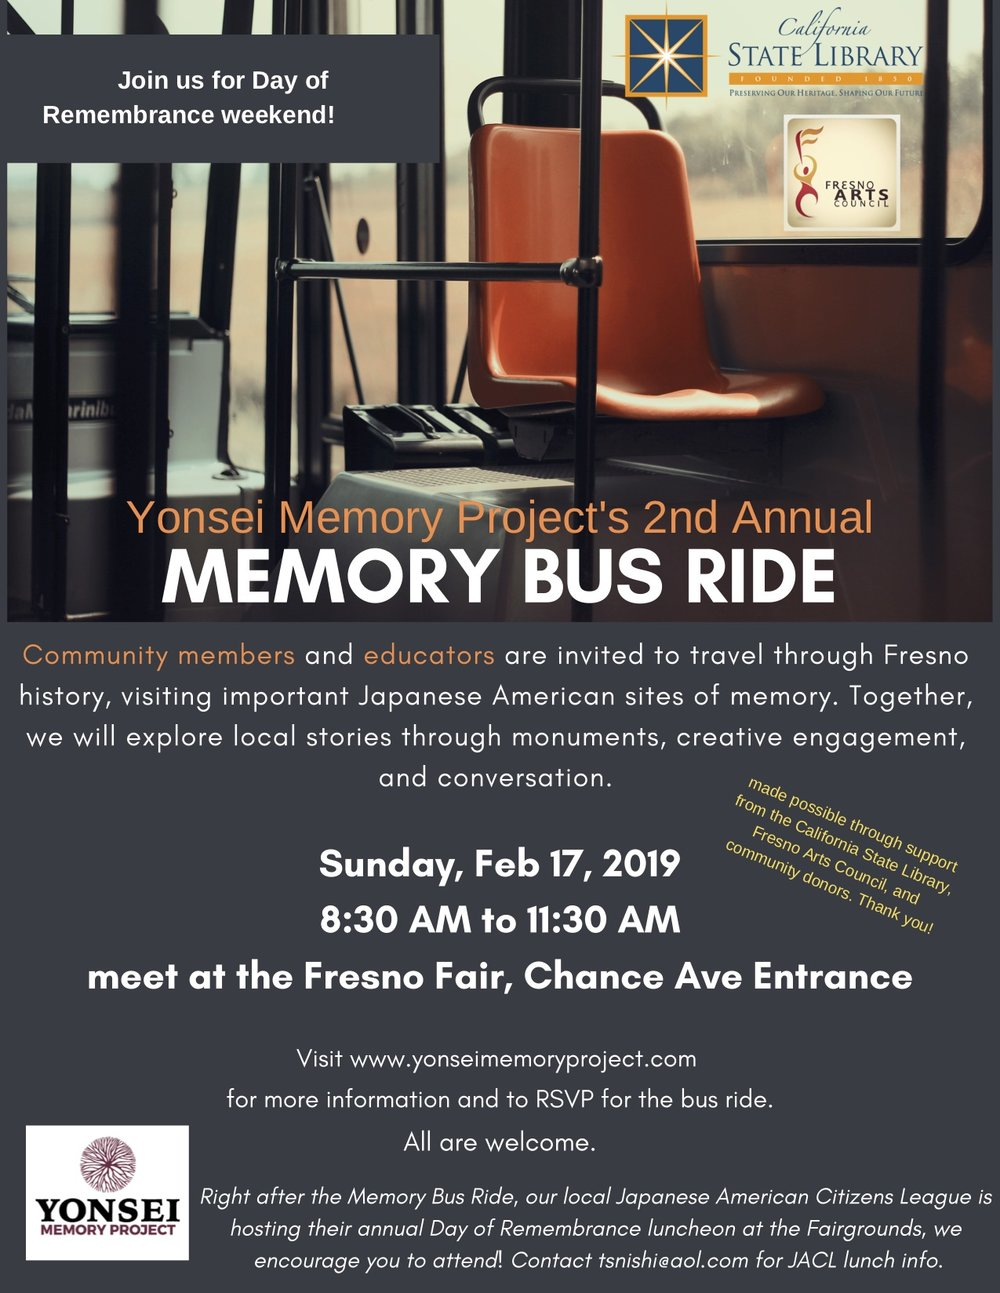 Above image: YMP's Memory Bus Ride flyer.